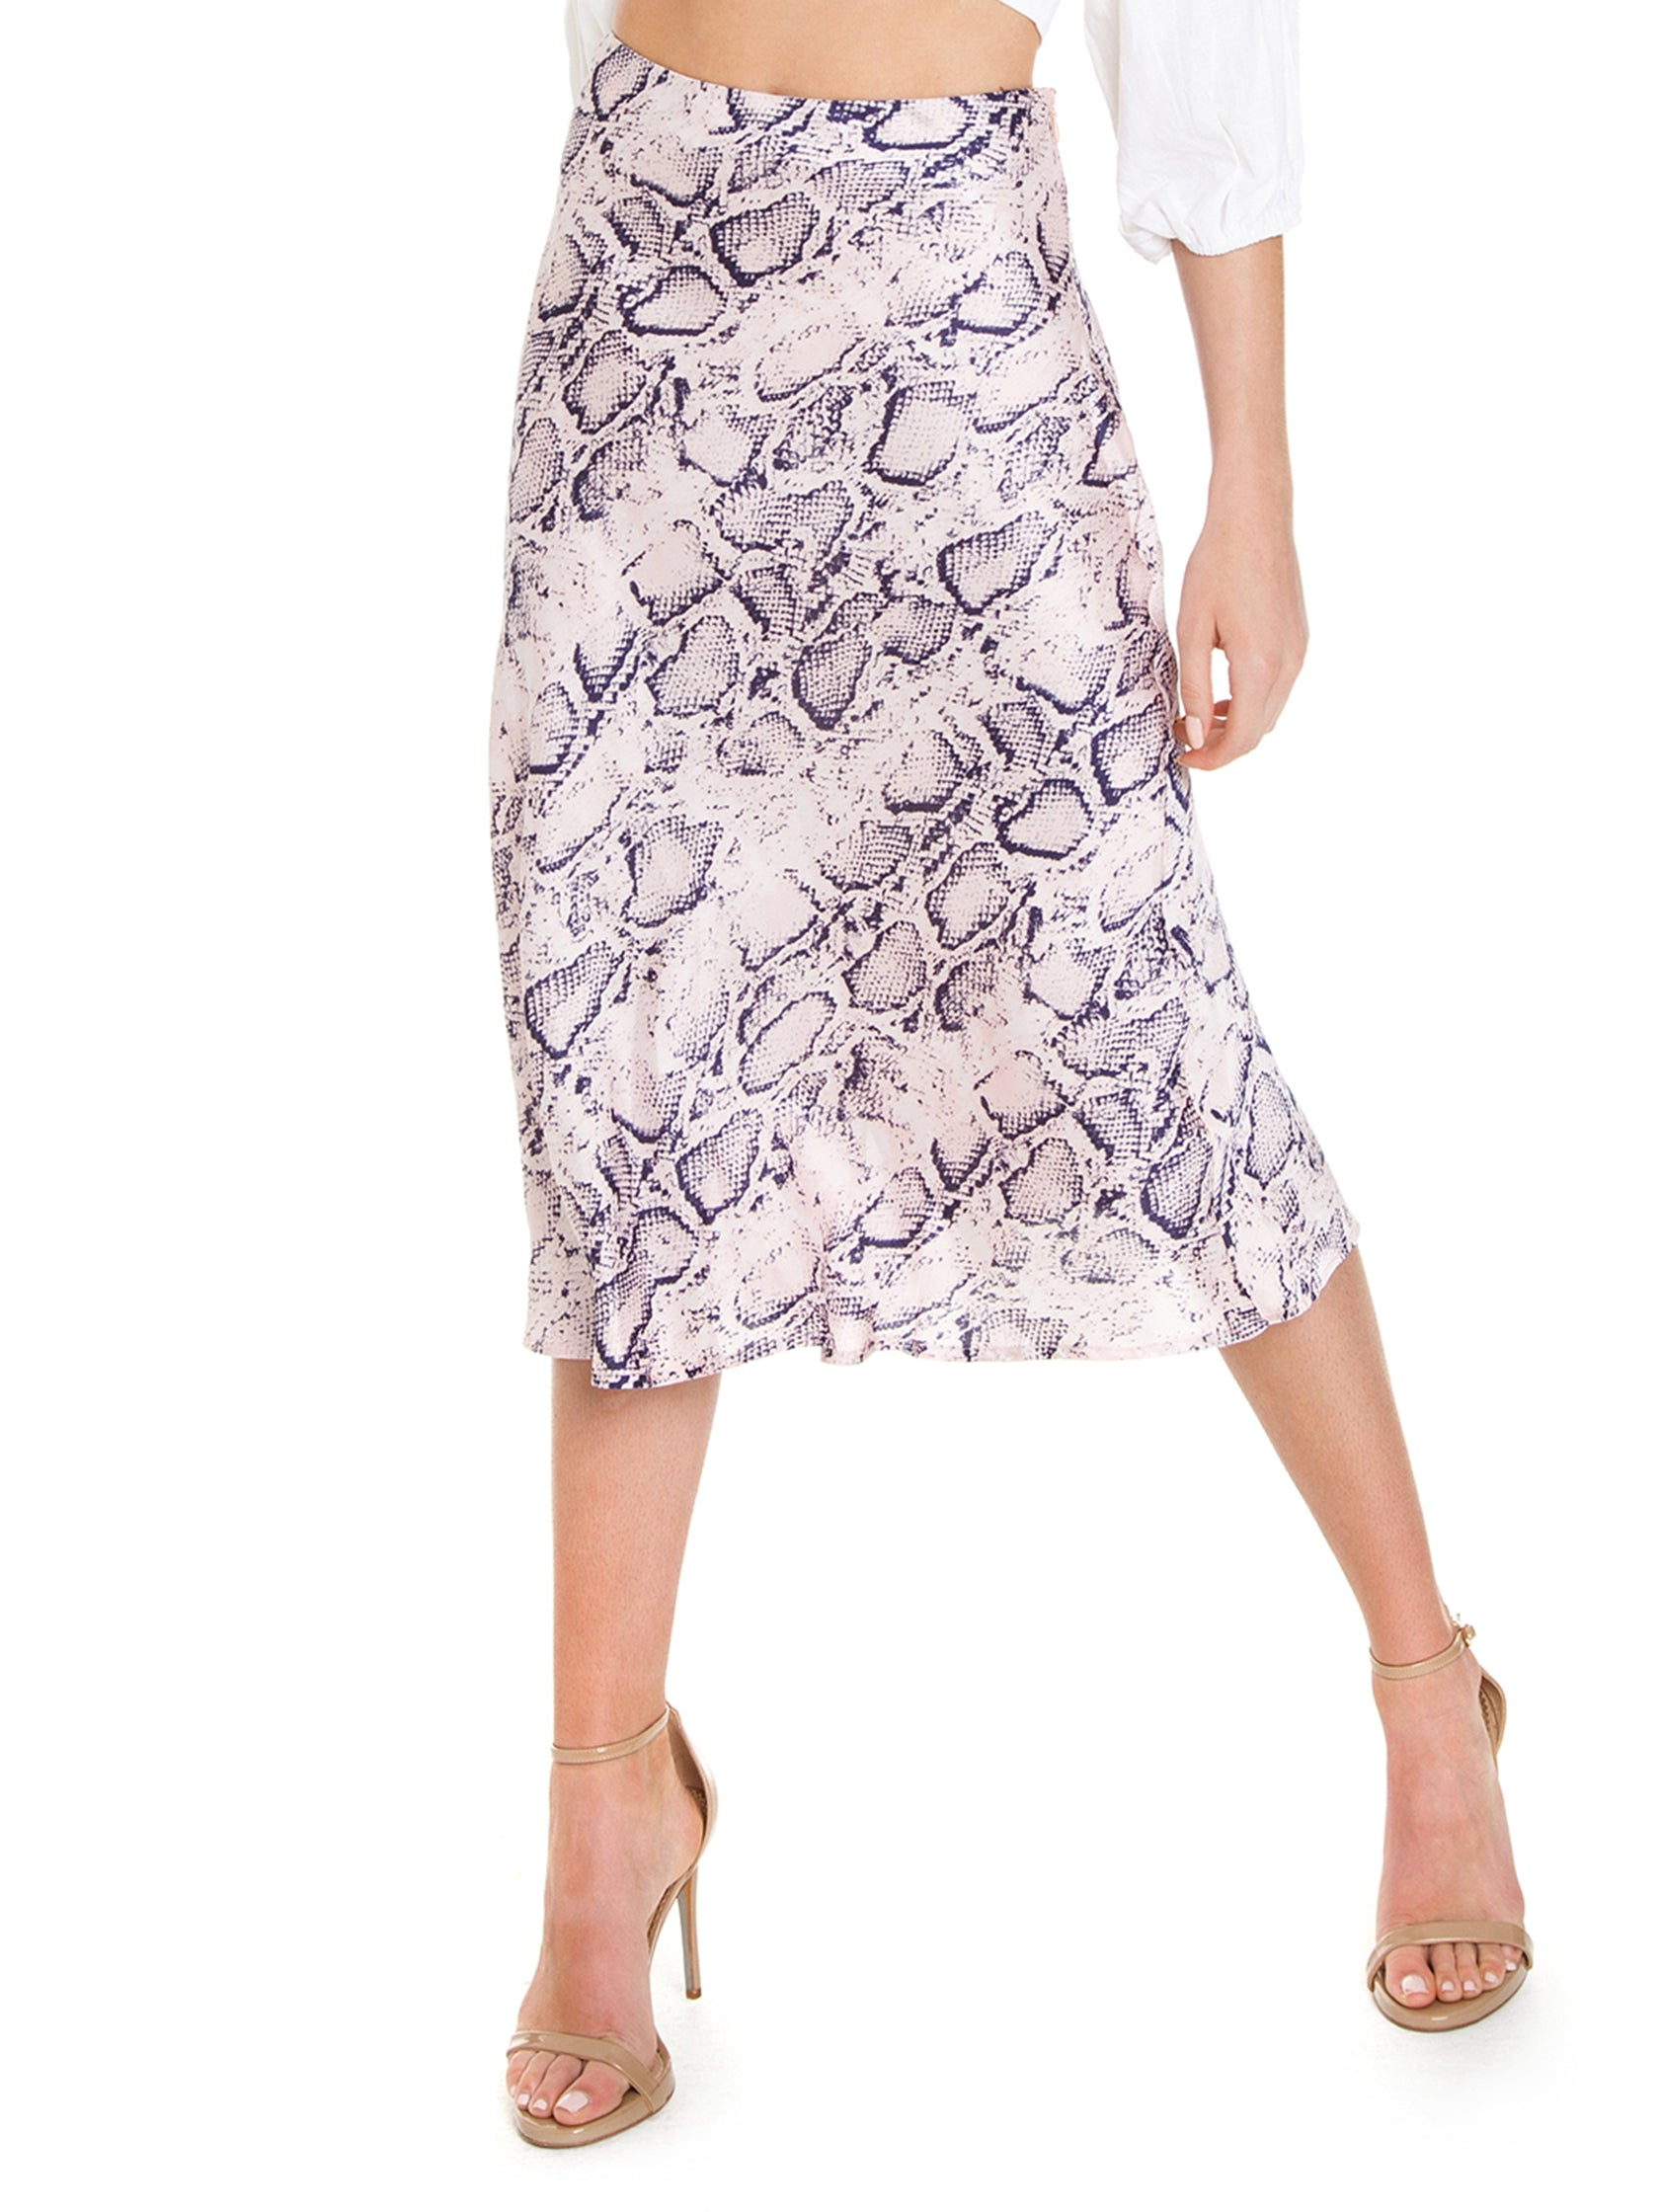 Woman wearing a skirt rental from FashionPass called Snakeskin Midi Skirt